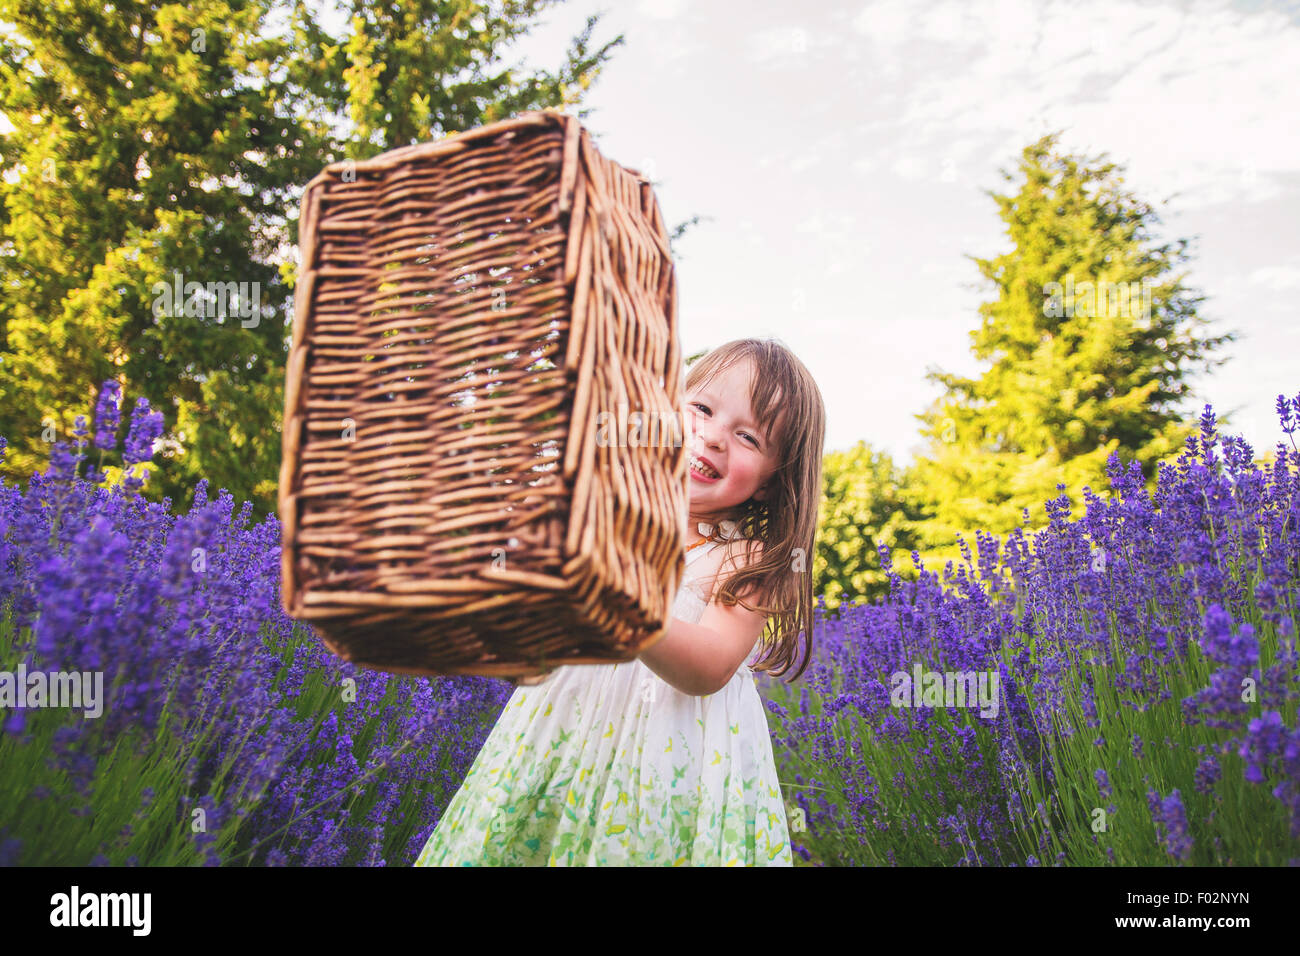 Girl waving a basket in a lavender field - Stock Image